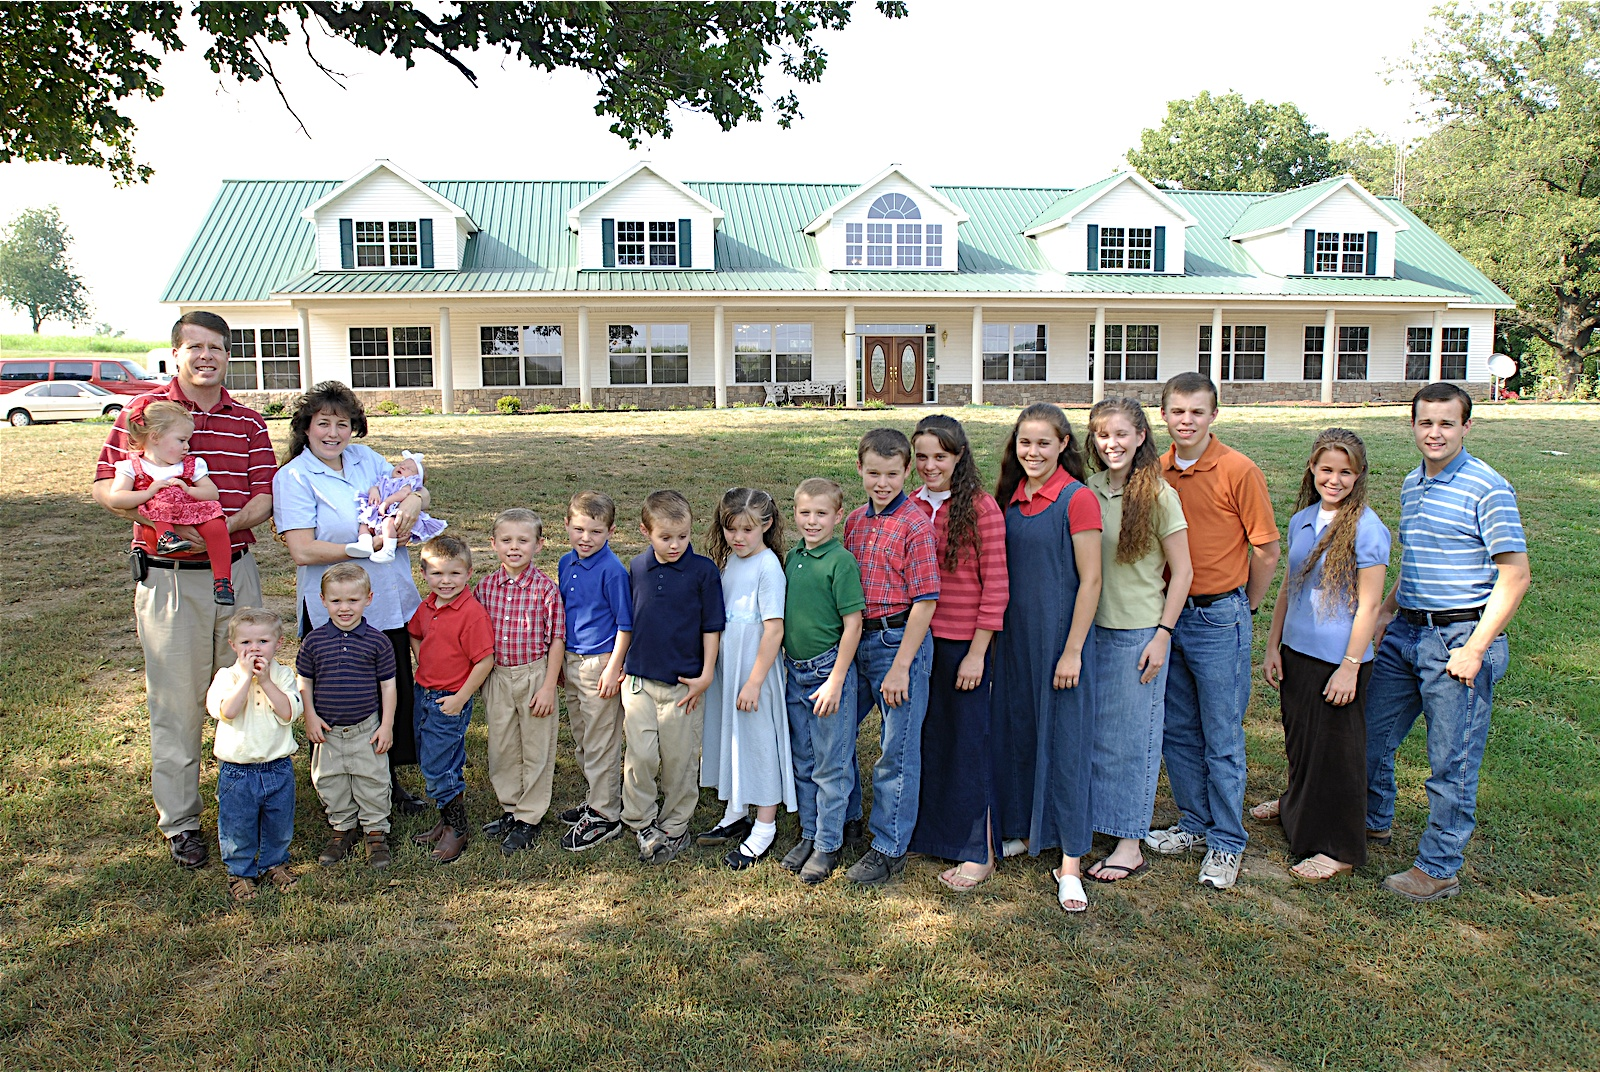 Duggar Family Expecting 20th Child